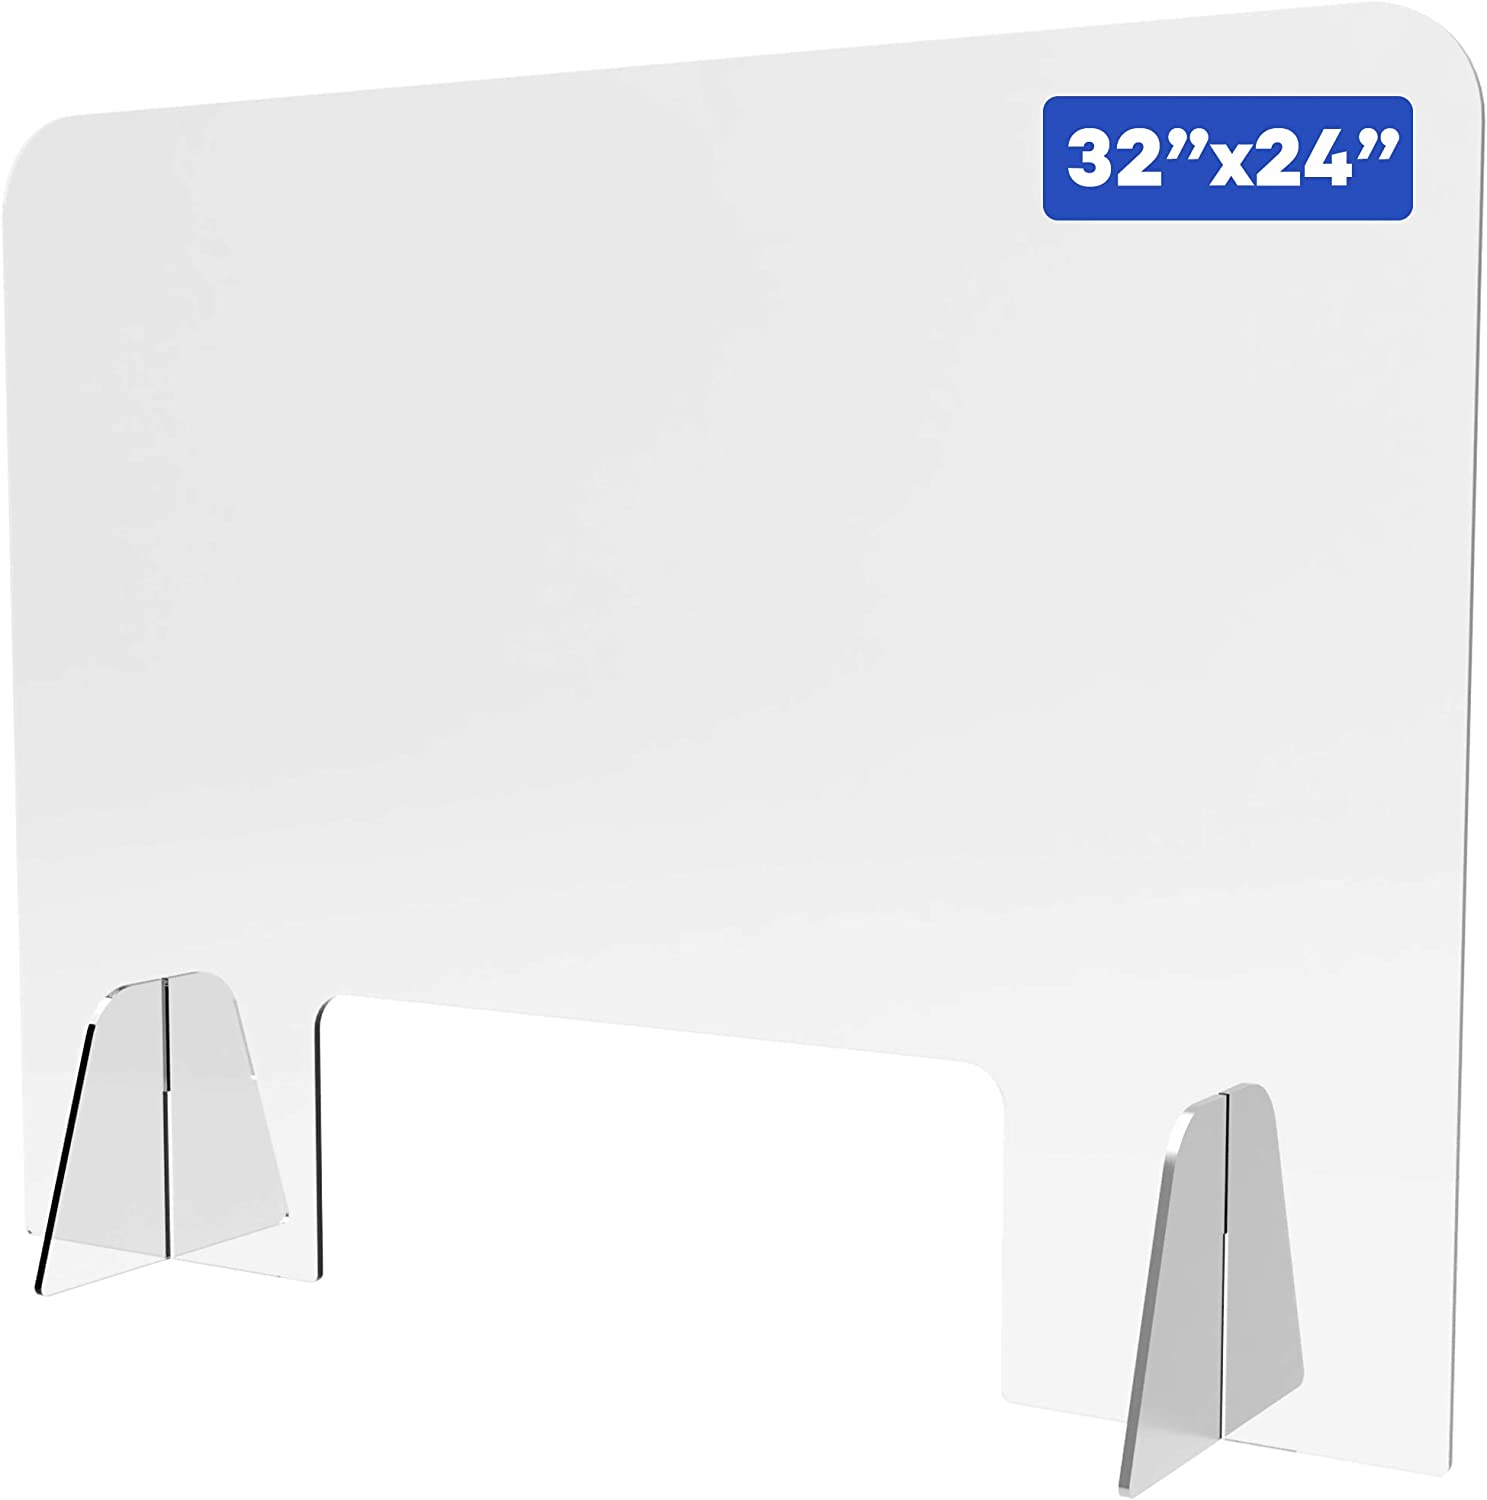 """Shield Geek Premium Sneeze Guard for Counter - Freestanding Plexiglass Shield with Larger Opening at the Bottom - Crystal Clear Acrylic - for Business, Cashier Counters, and Restaurants 32"""" x 24"""""""